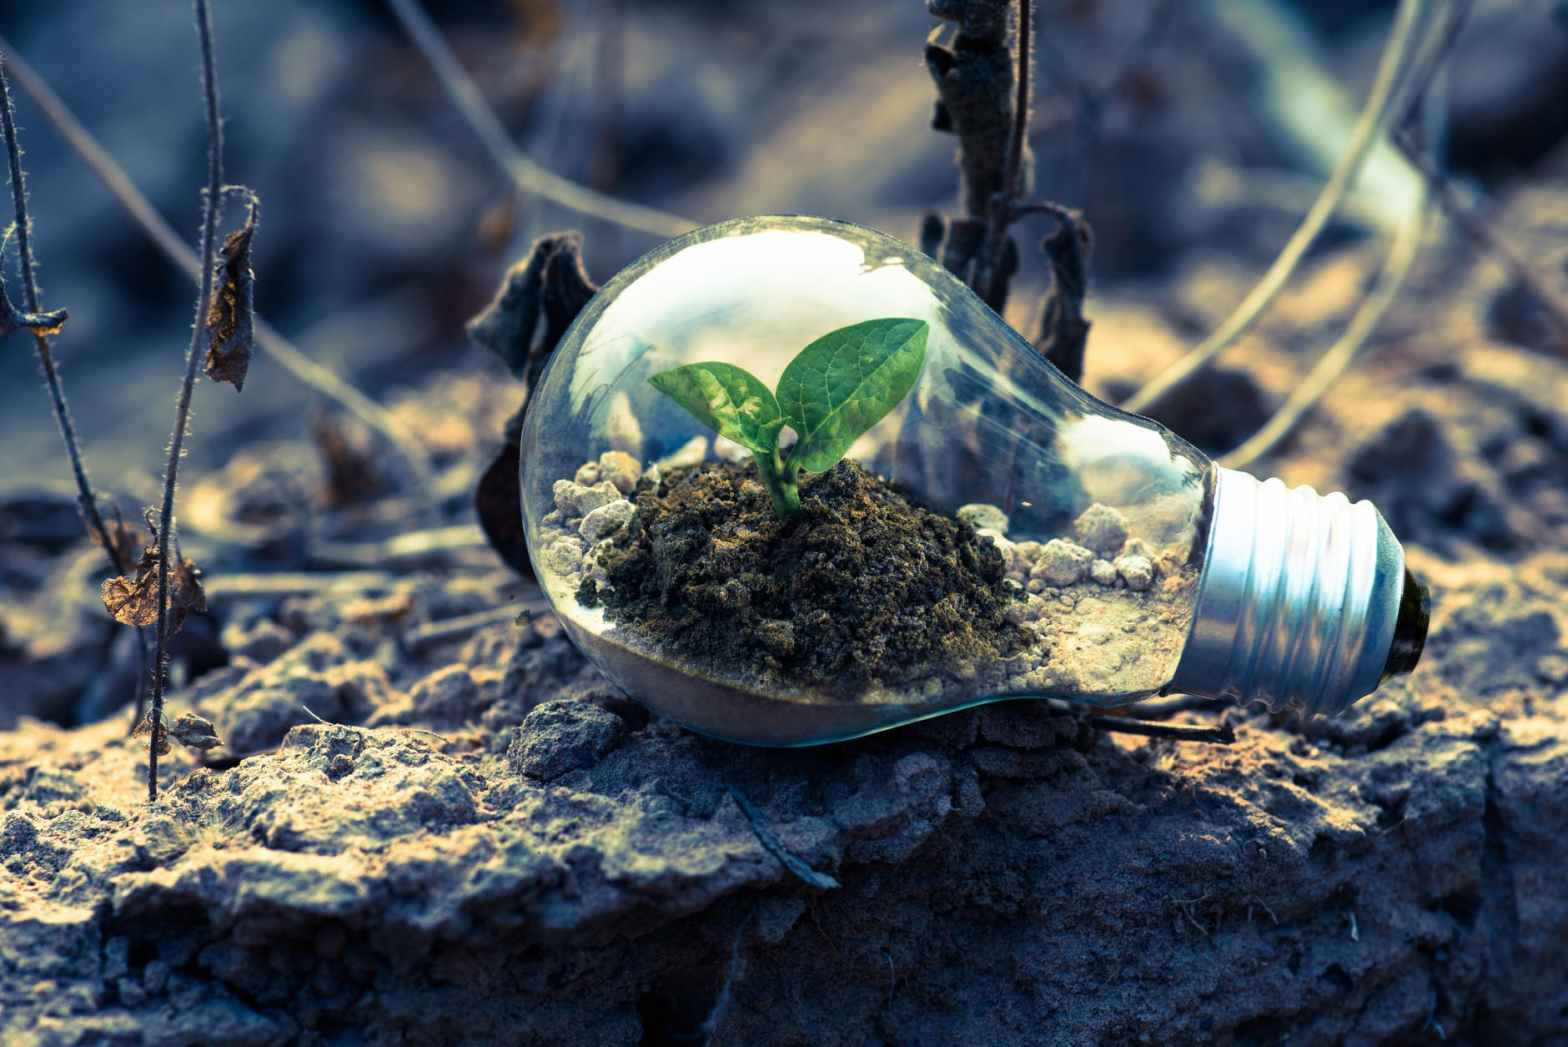 a bulb with a plant inside signifying an eco life and to save energy